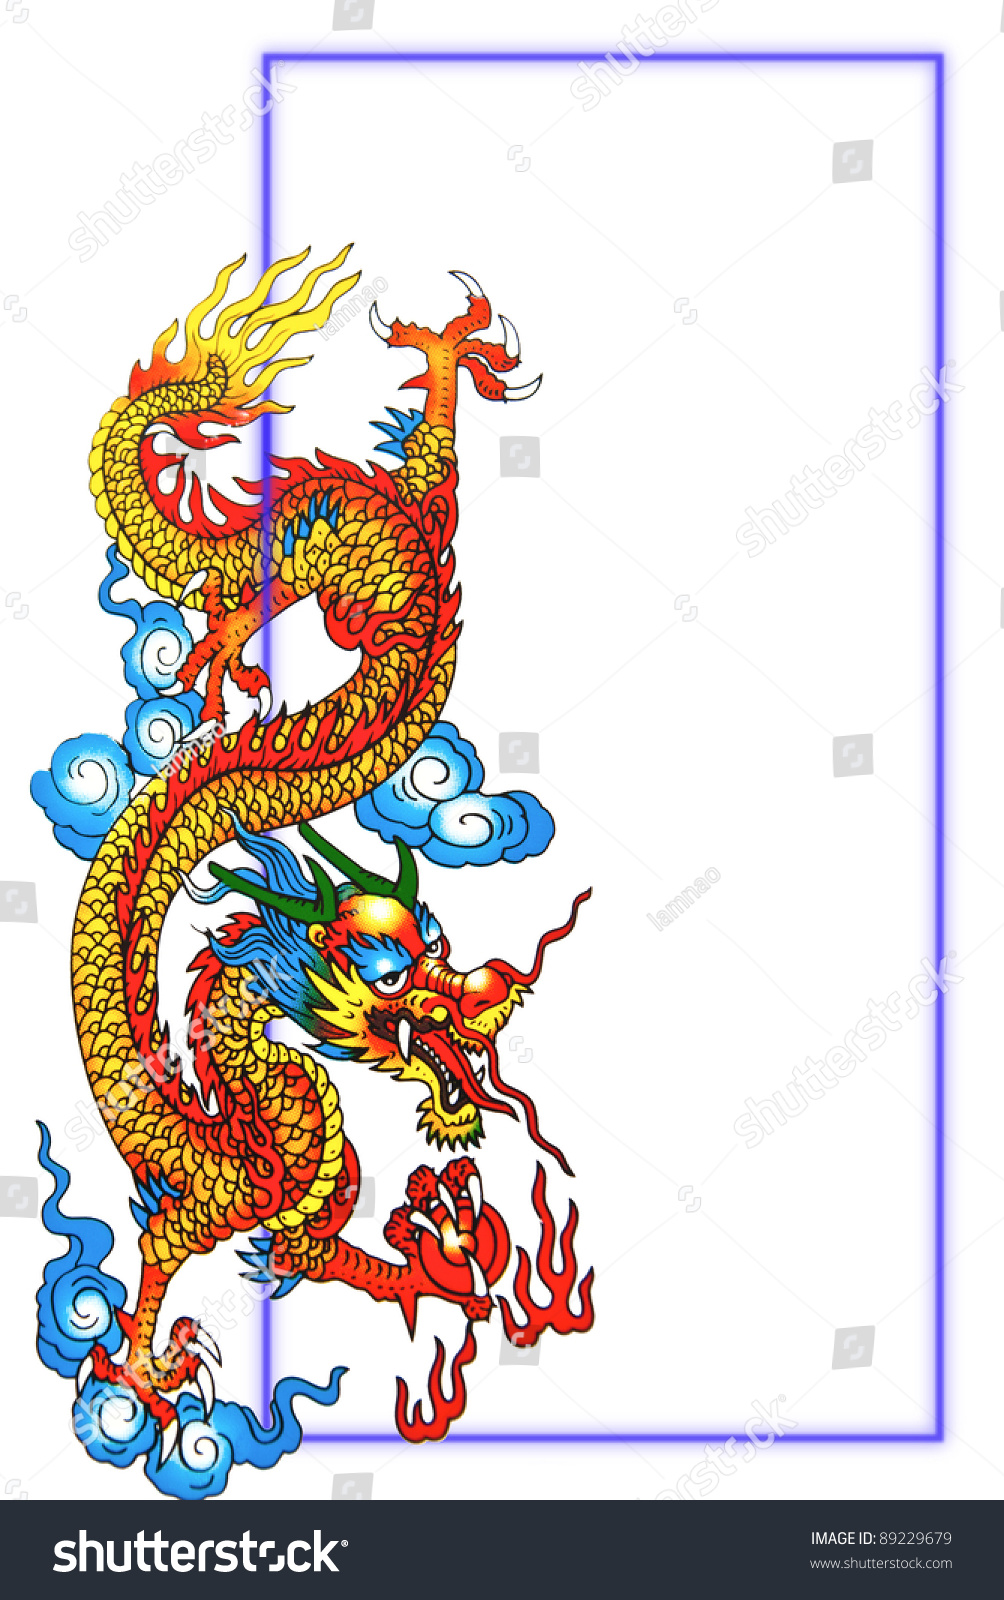 Colorful Chinese Dragon Blue Frame Stock Photo & Image (Royalty-Free ...